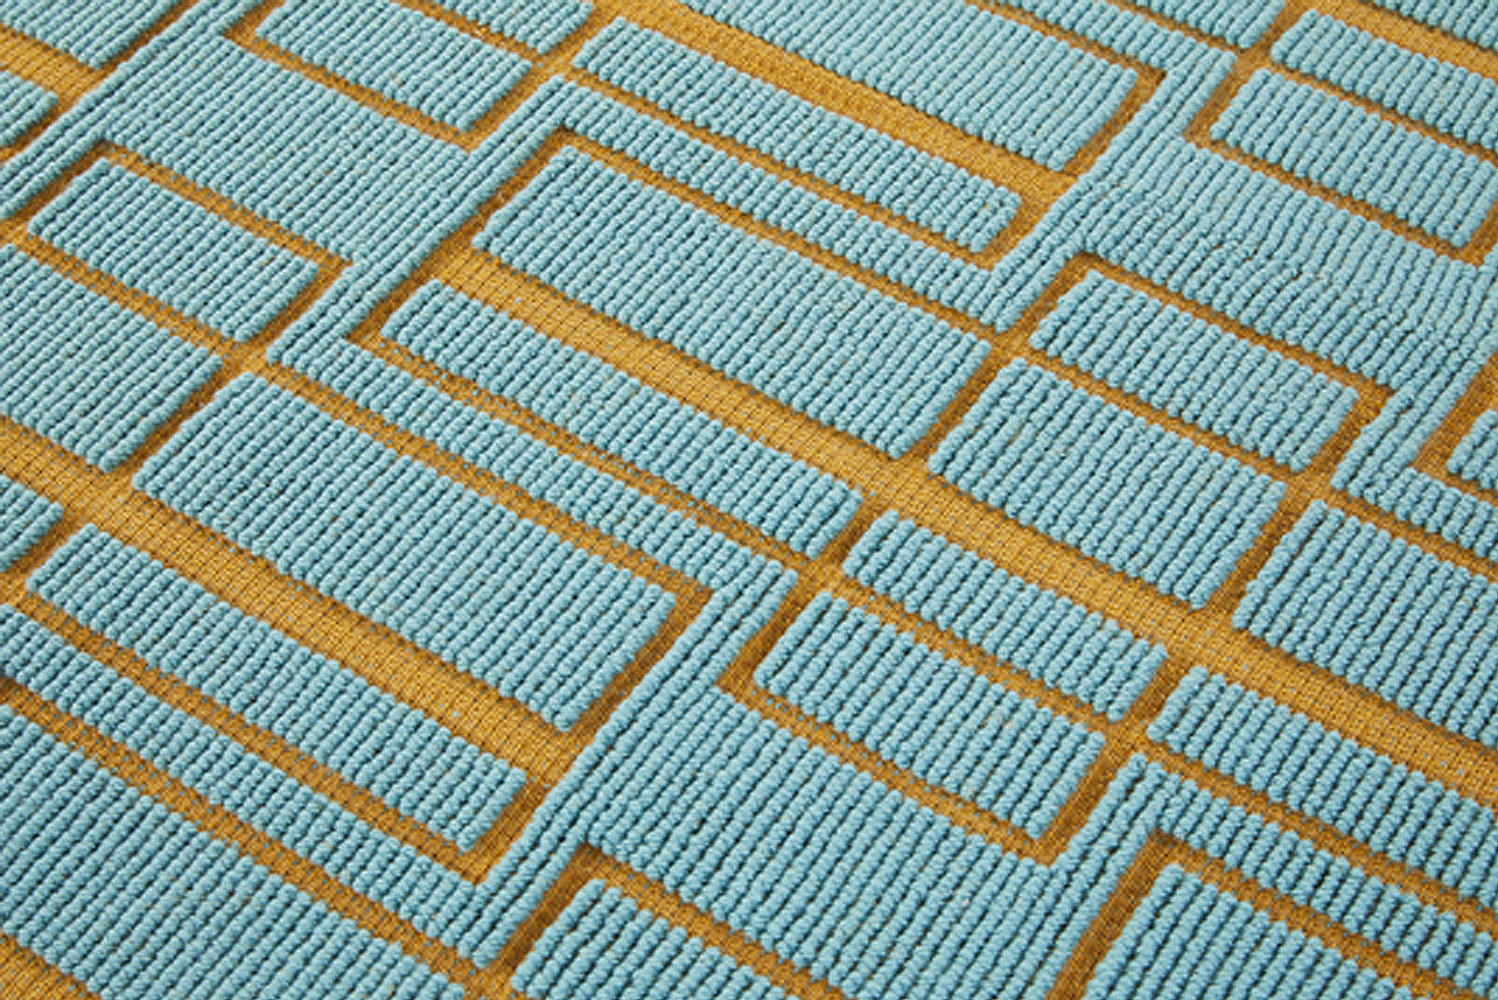 La Manufacture Cogolin launched a new collection of wool, cotton and jute carpets.